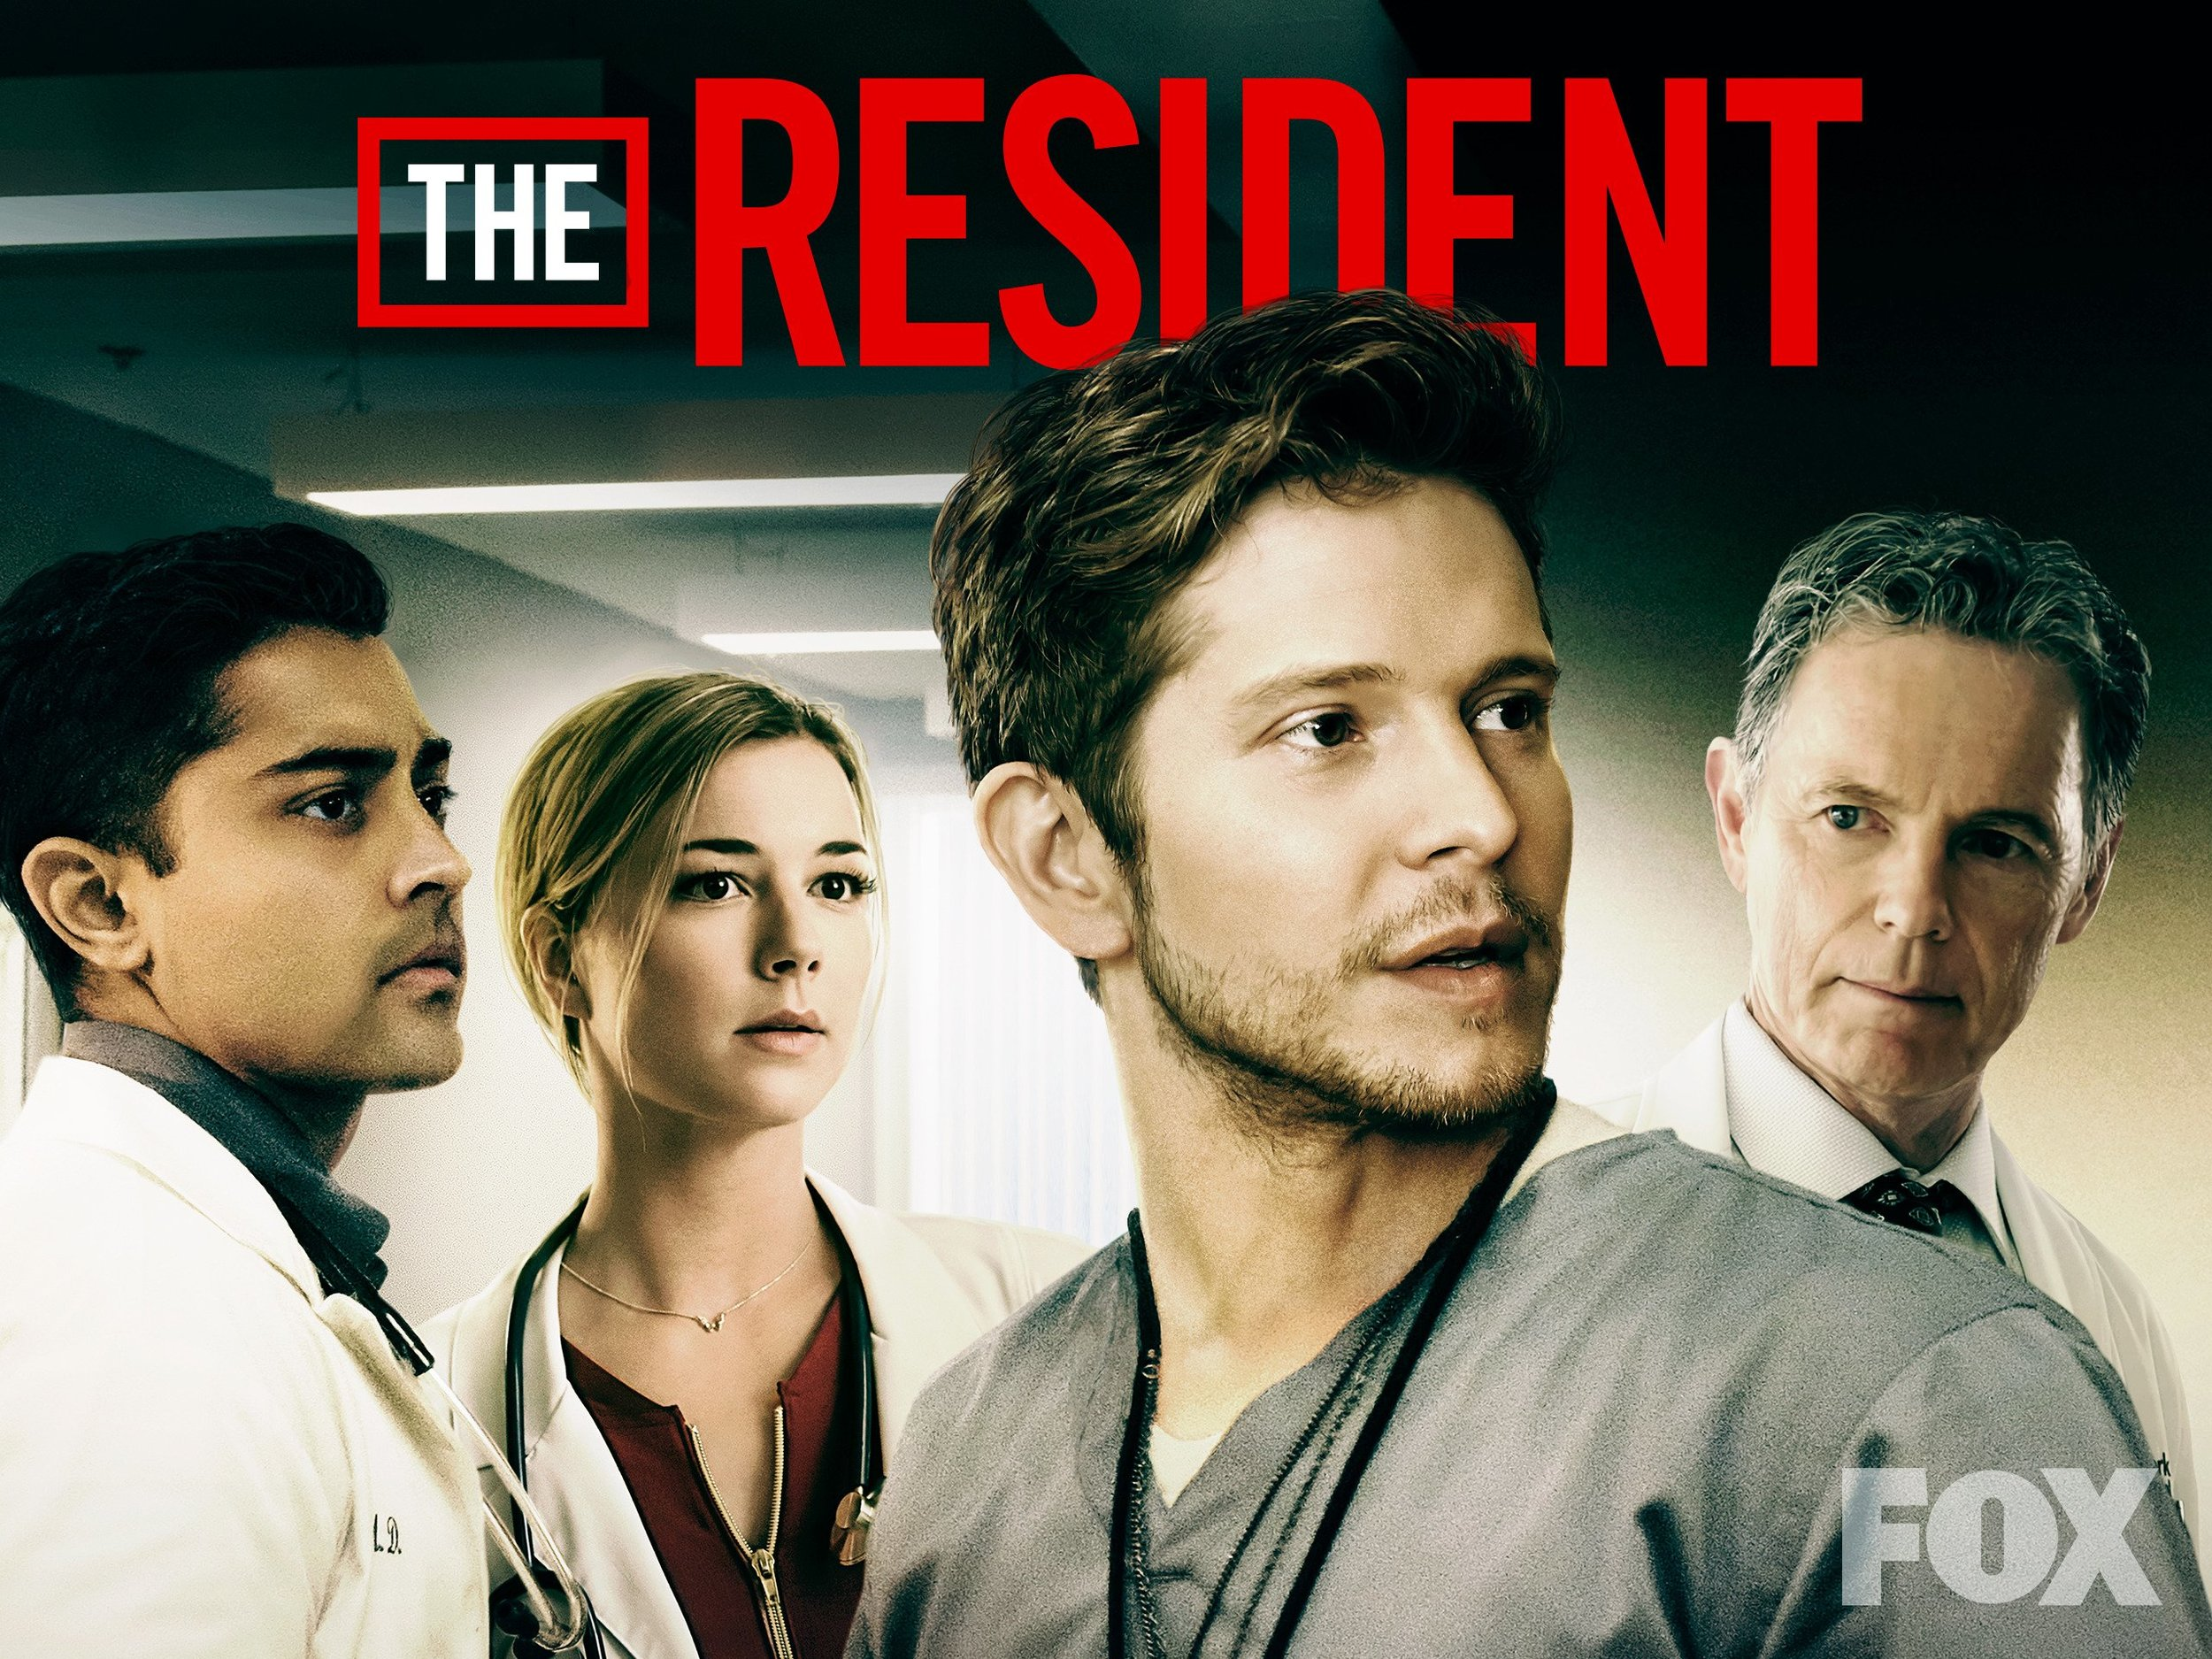 The Resident- Medical Drama Currently On Television and Hulu